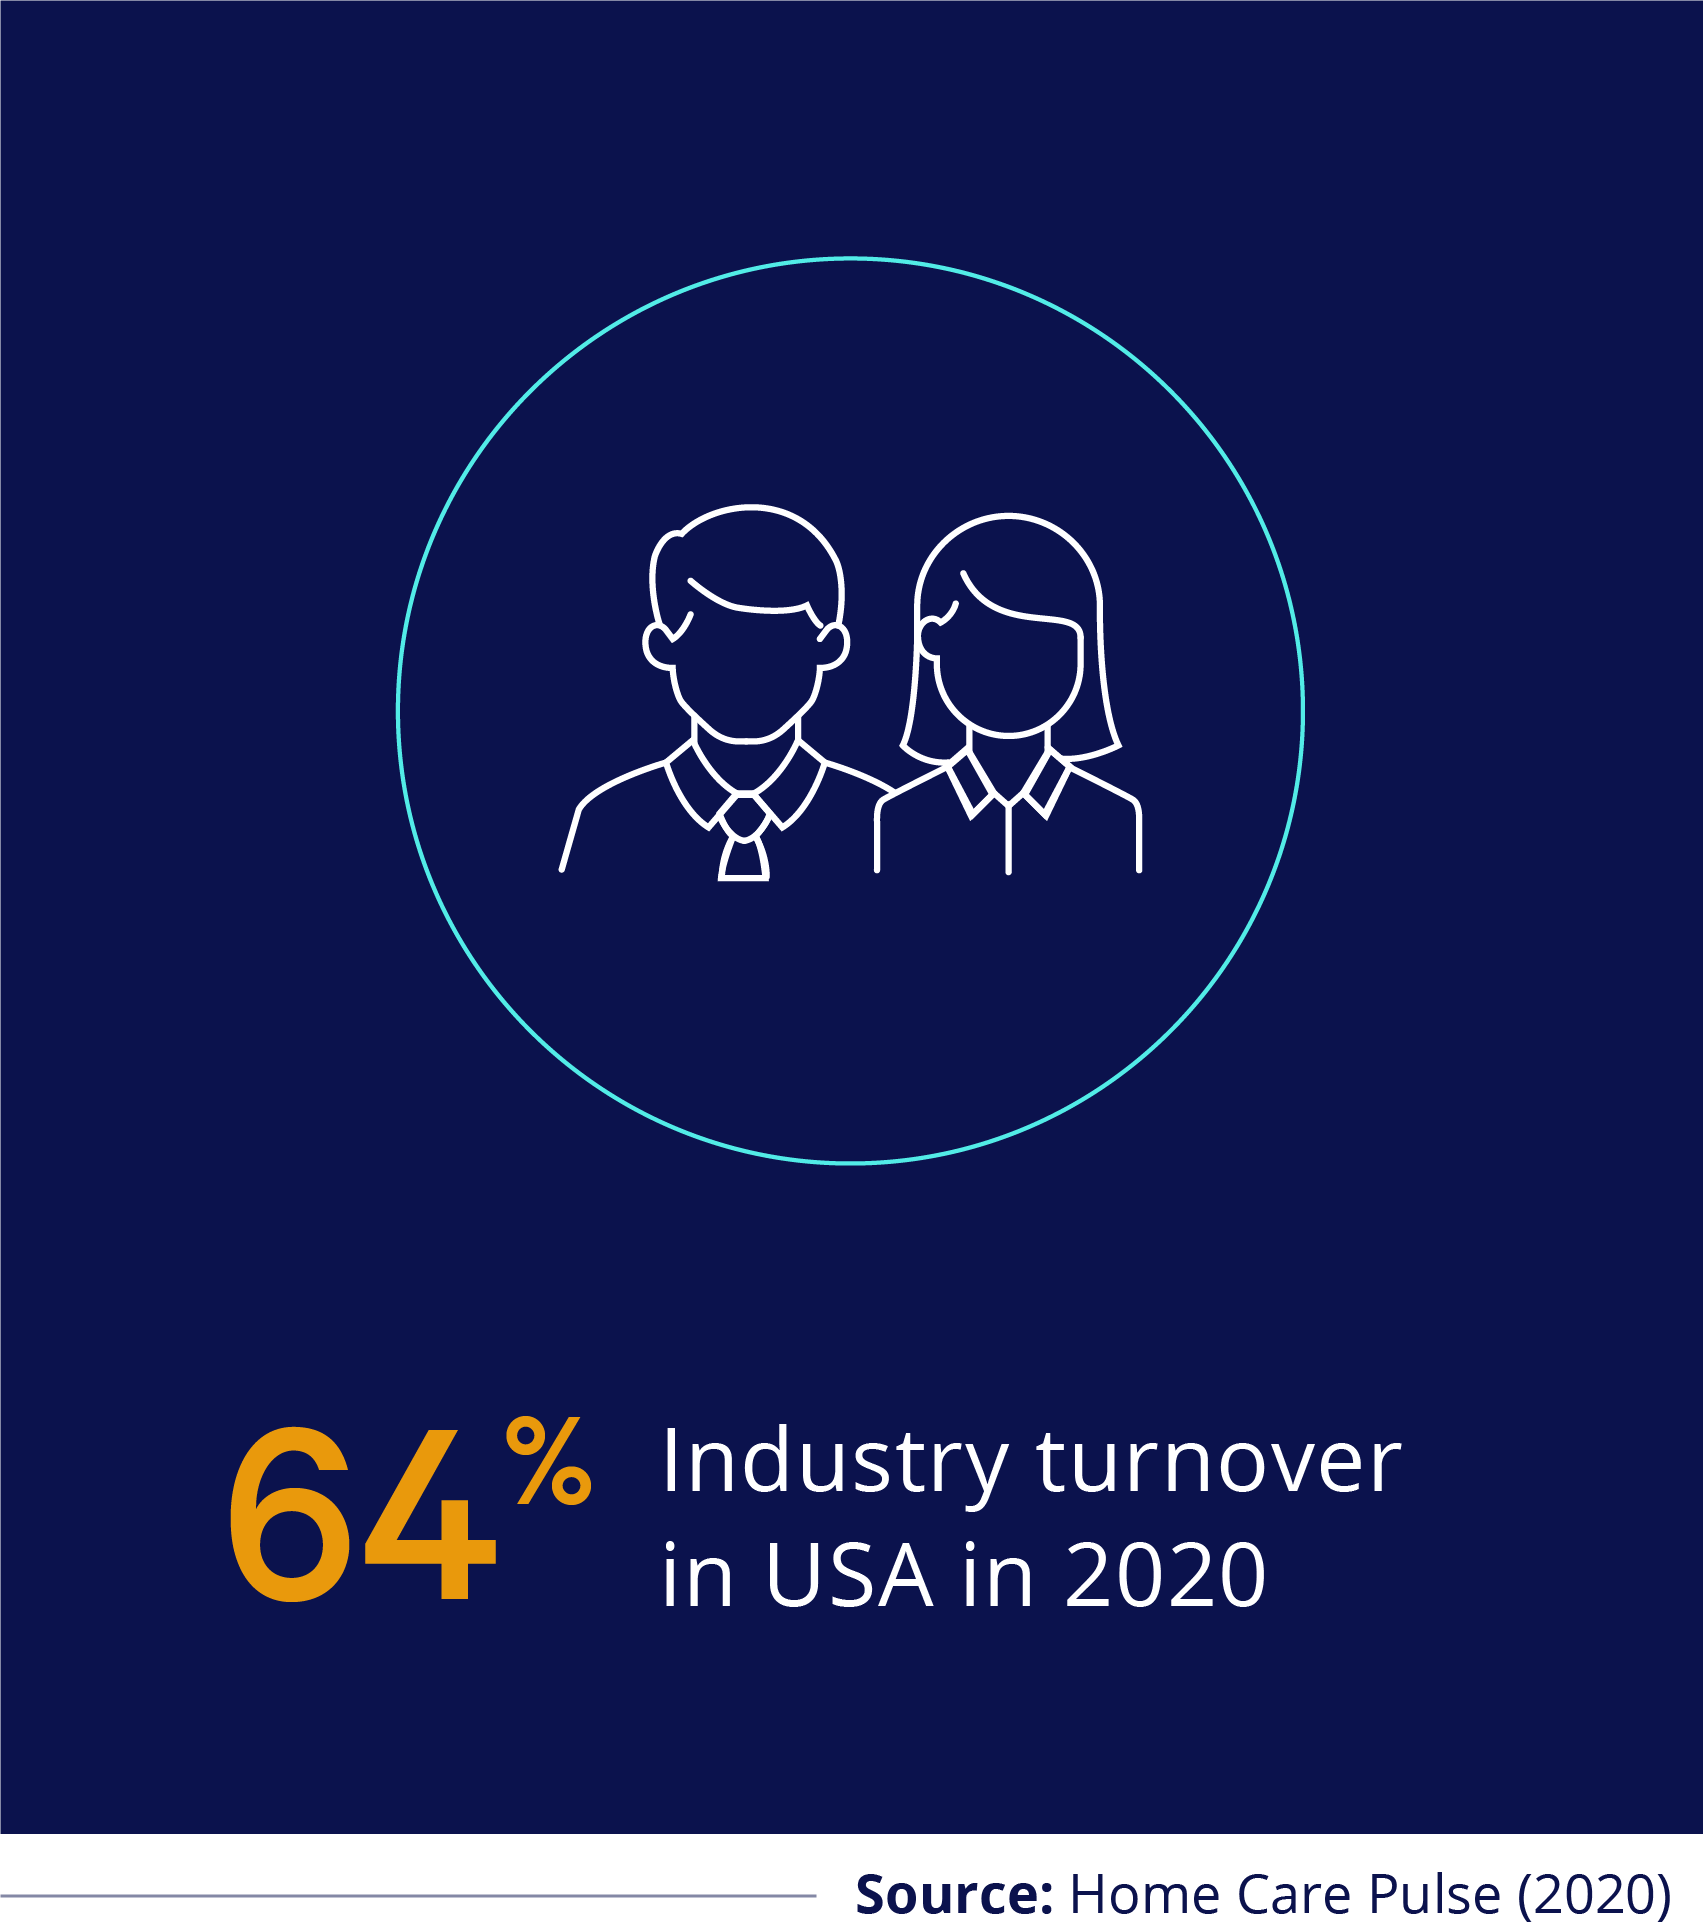 64% Industry Turnover in USA in 2020